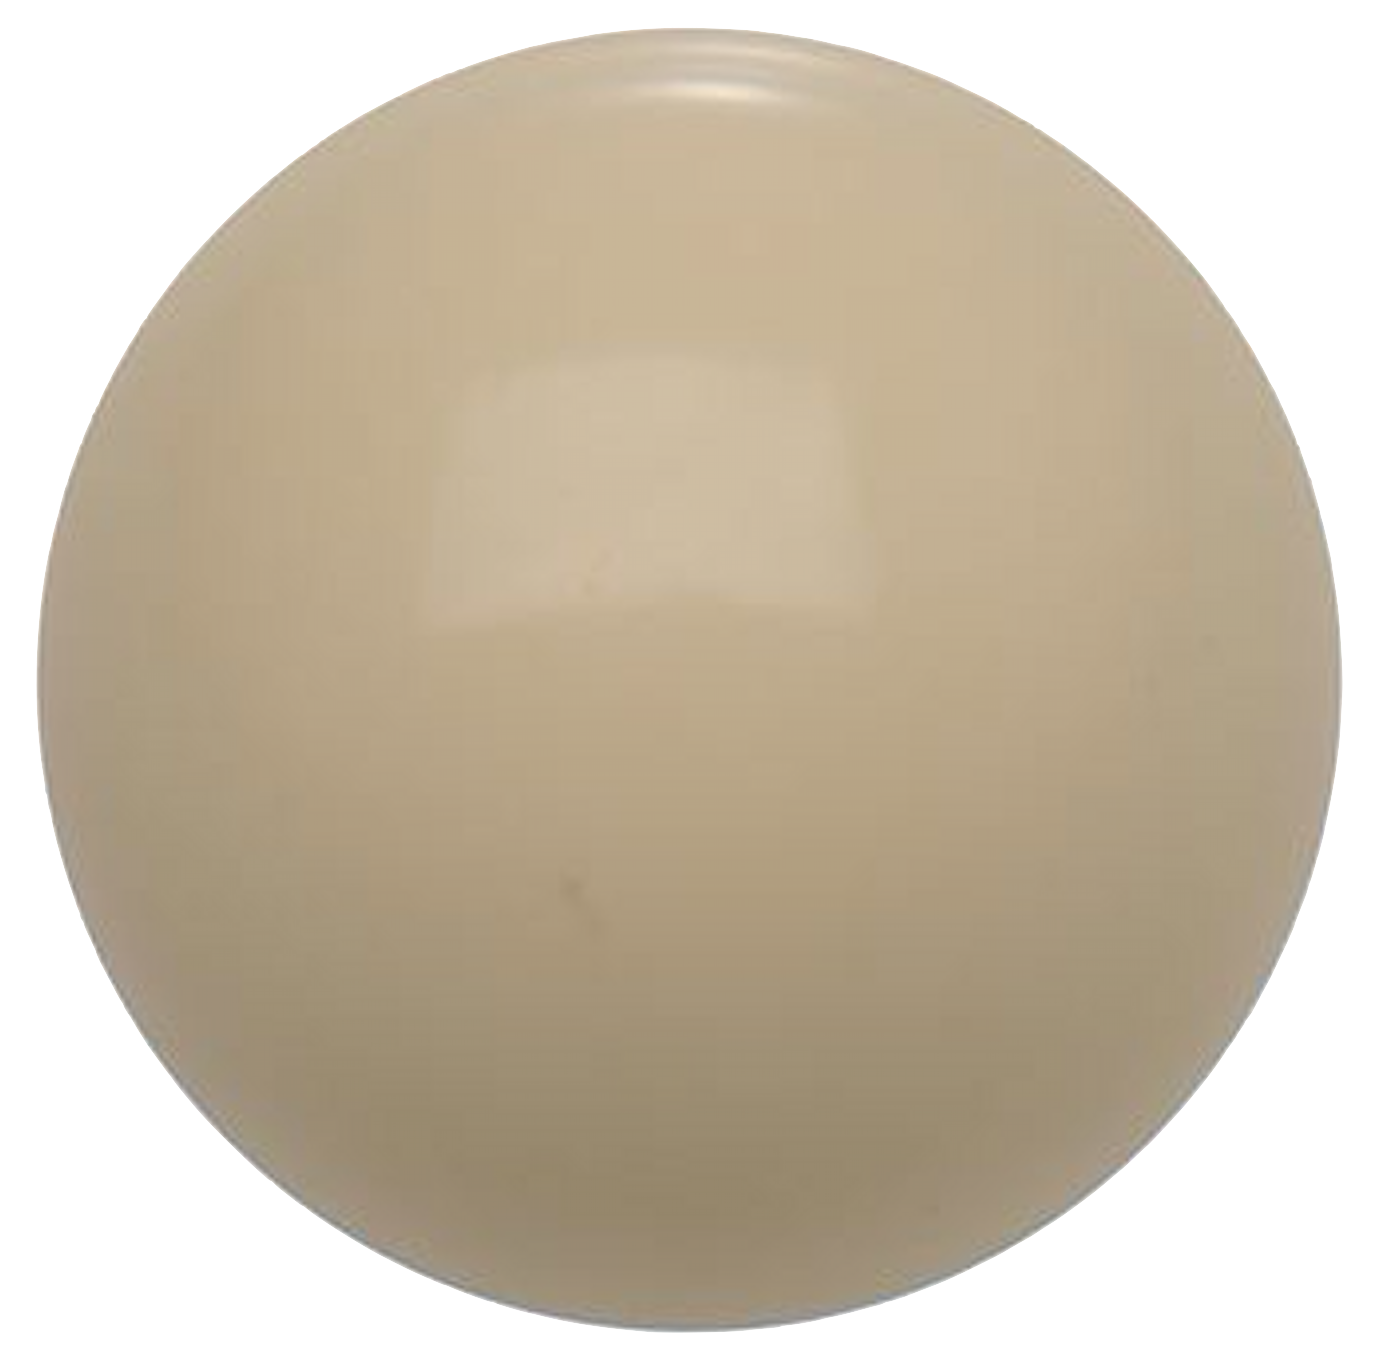 Cue ball png.